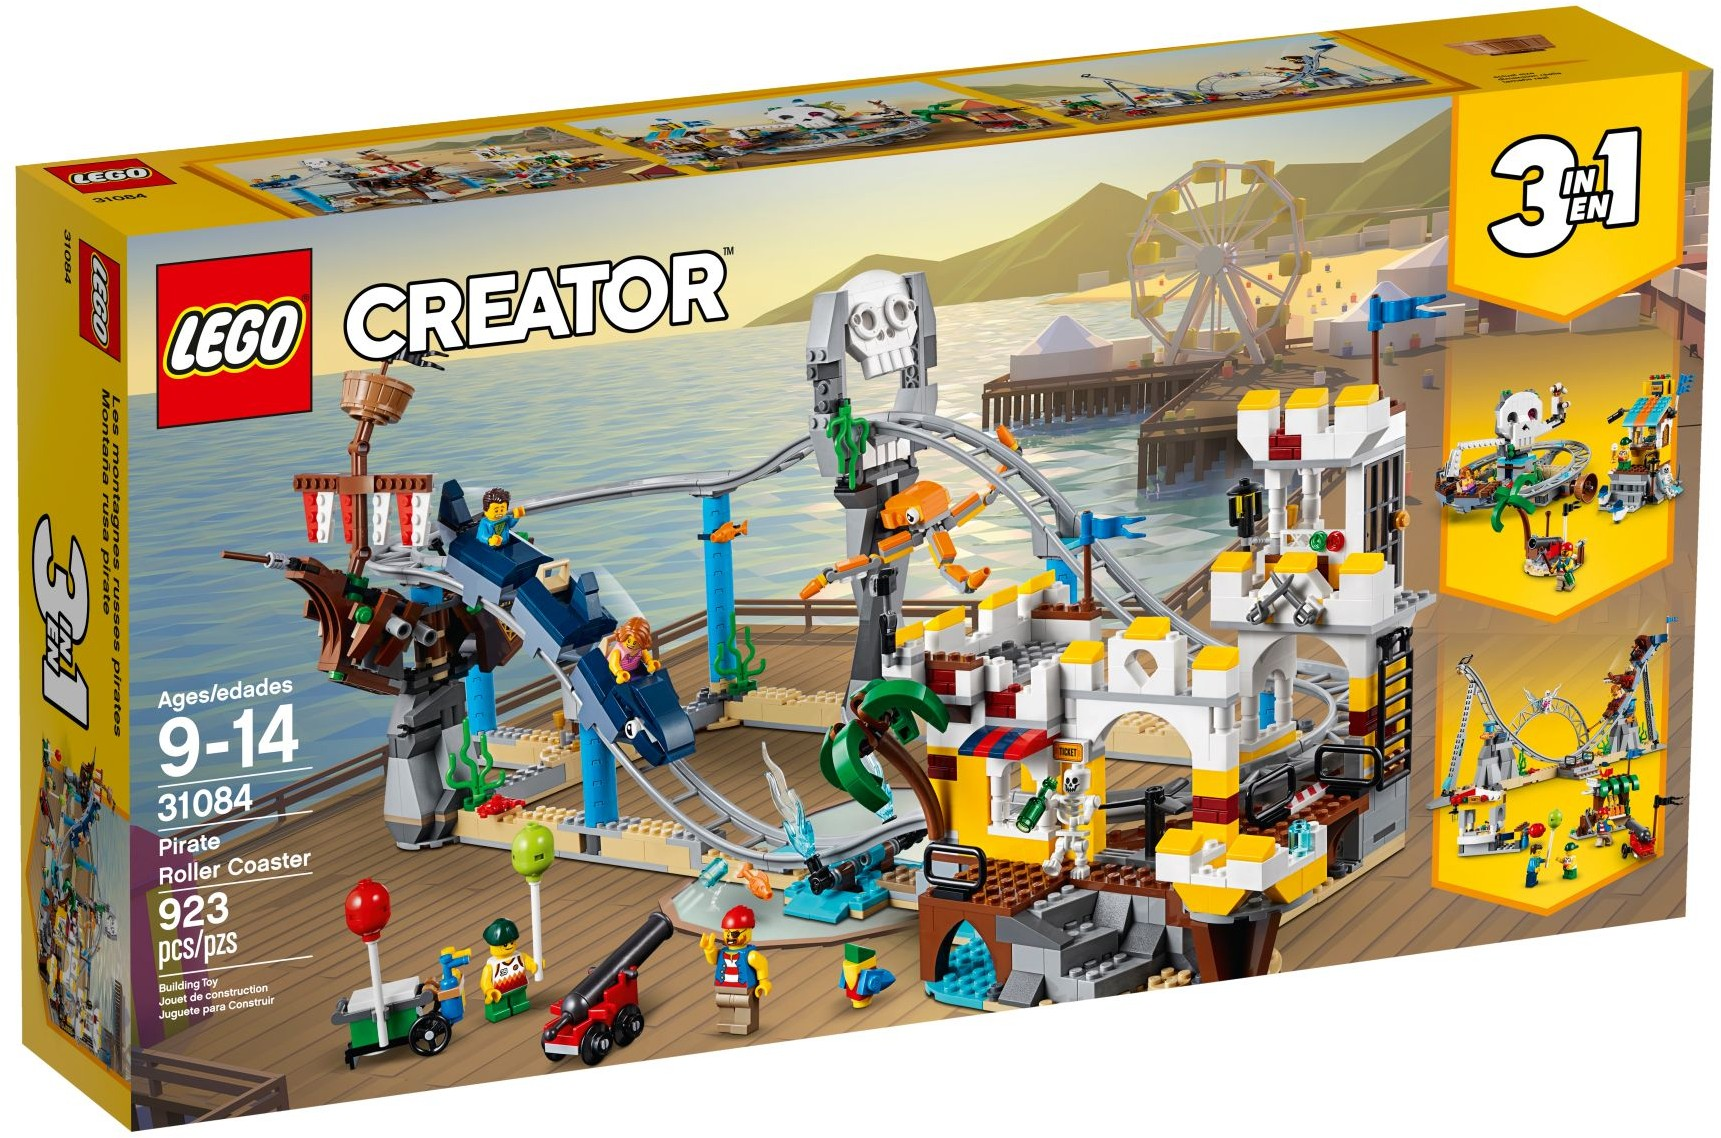 Lego Creator 31084 Pirate Roller Coaster Box The Brothers Brick